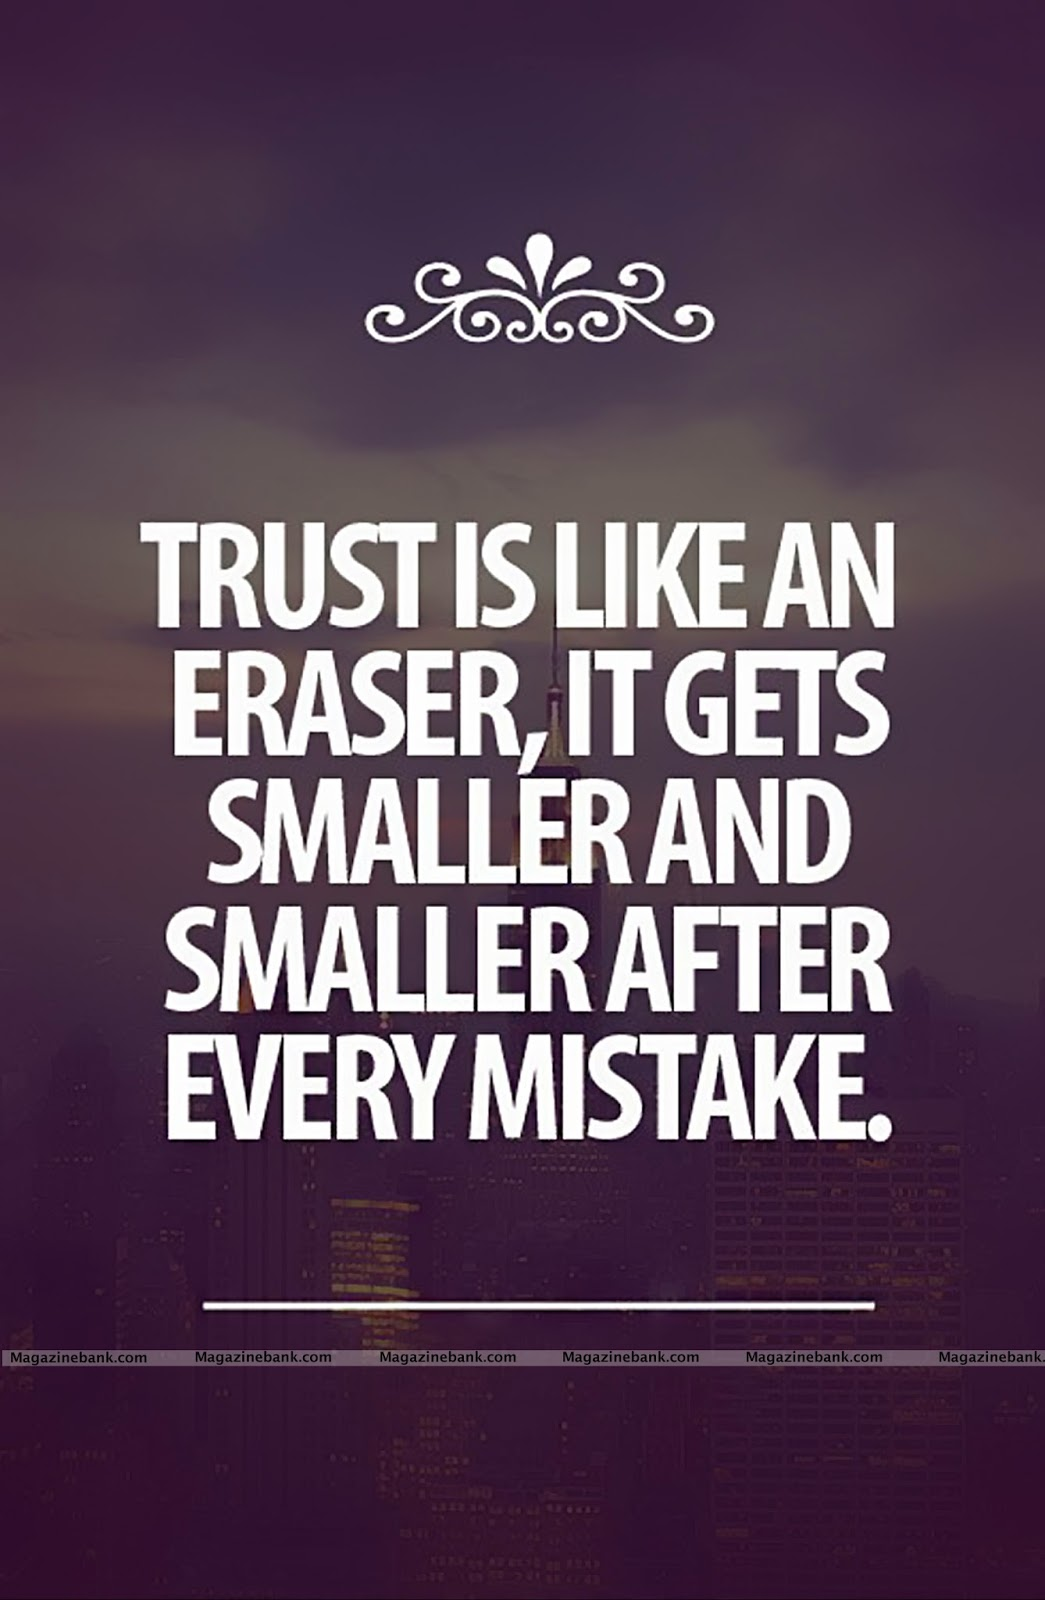 Quotes About Love And Trust Tumblr : best quotes about trust quotes about trust issues and lies